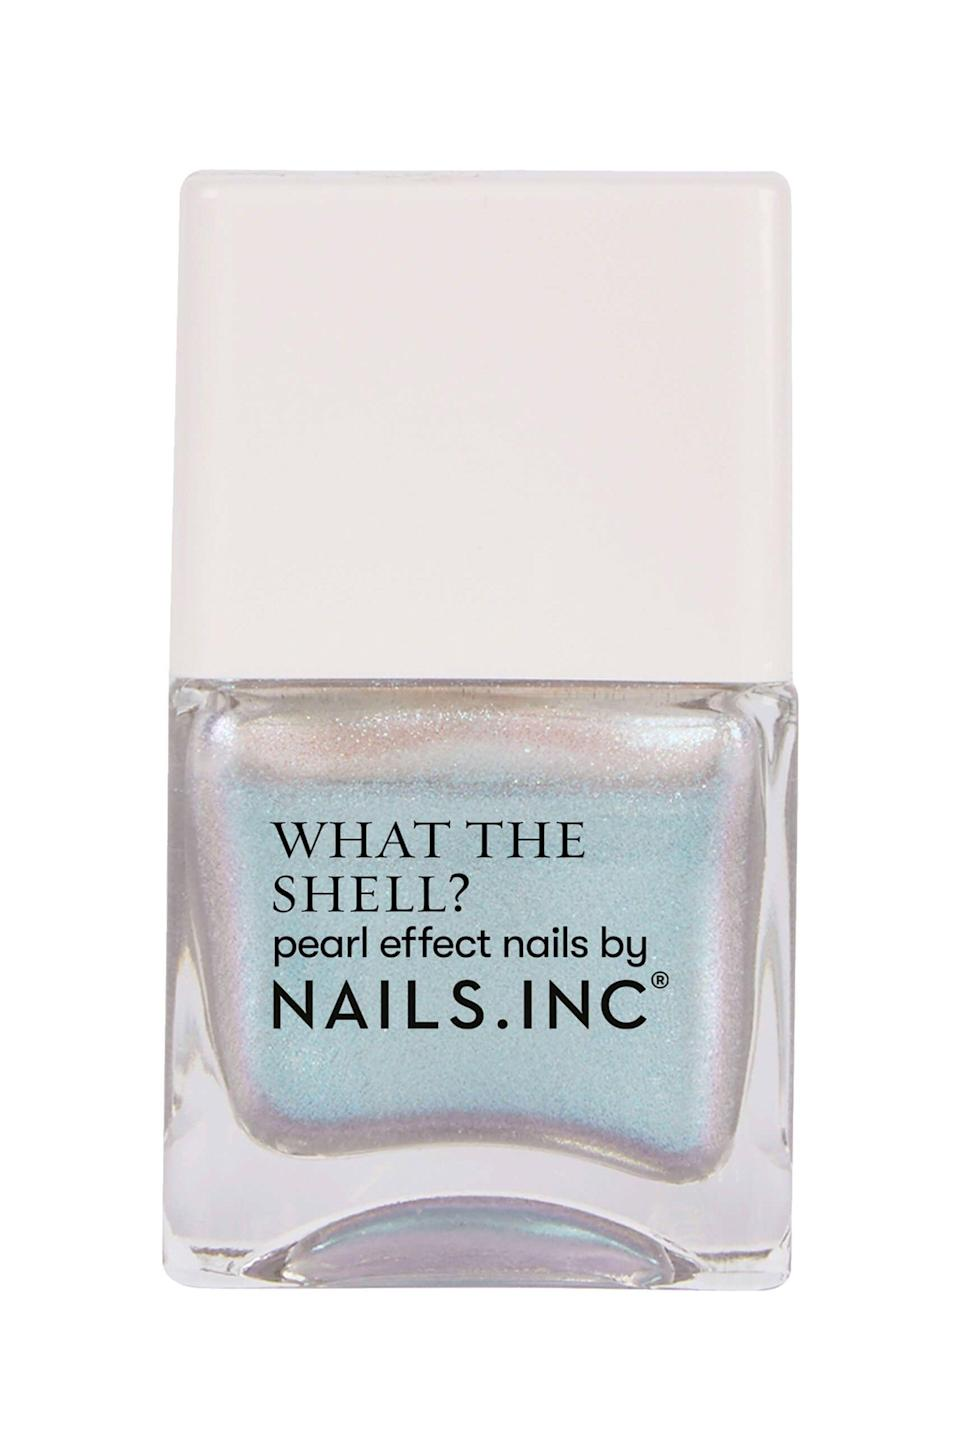 """<p><strong>Nails.INC Anthropologie</strong></p><p>anthropologie.com</p><p><strong>$11.00</strong></p><p><a href=""""https://go.redirectingat.com?id=74968X1596630&url=https%3A%2F%2Fwww.anthropologie.com%2Fshop%2Fnailsinc-what-the-shell-nail-polish&sref=https%3A%2F%2Fwww.seventeen.com%2Fbeauty%2Fnails%2Fg2741%2Fbest-spring-nail-colors%2F"""" rel=""""nofollow noopener"""" target=""""_blank"""" data-ylk=""""slk:Shop Now"""" class=""""link rapid-noclick-resp"""">Shop Now</a></p><p>A cool twist on a classic spring shade, this pearl effect polish is the sparkle you need to take you into sunny weather.</p>"""